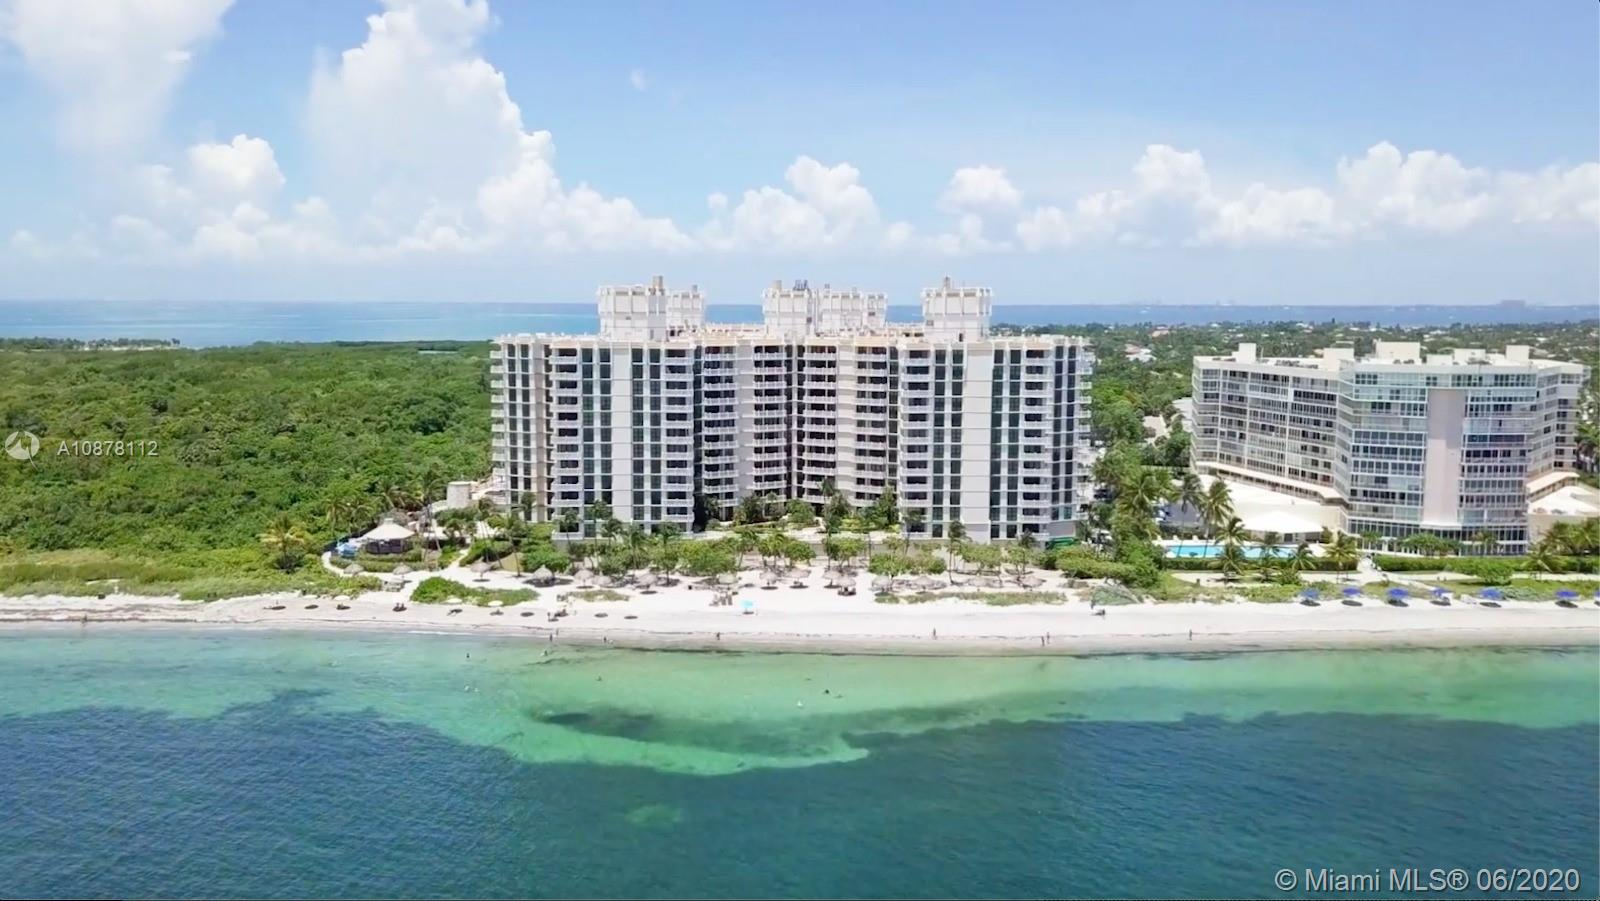 Spacious beachfront 1 Bed 1 Bath 1/2 bath apartment with concrete floors throughout and a 97 SF terrace facing the garden. The building amenities include: beach access, pool, gym, tennis courts, beach gazebo, bbq area, party room, billiard room, poker room, toddler's playroom, and beach services.